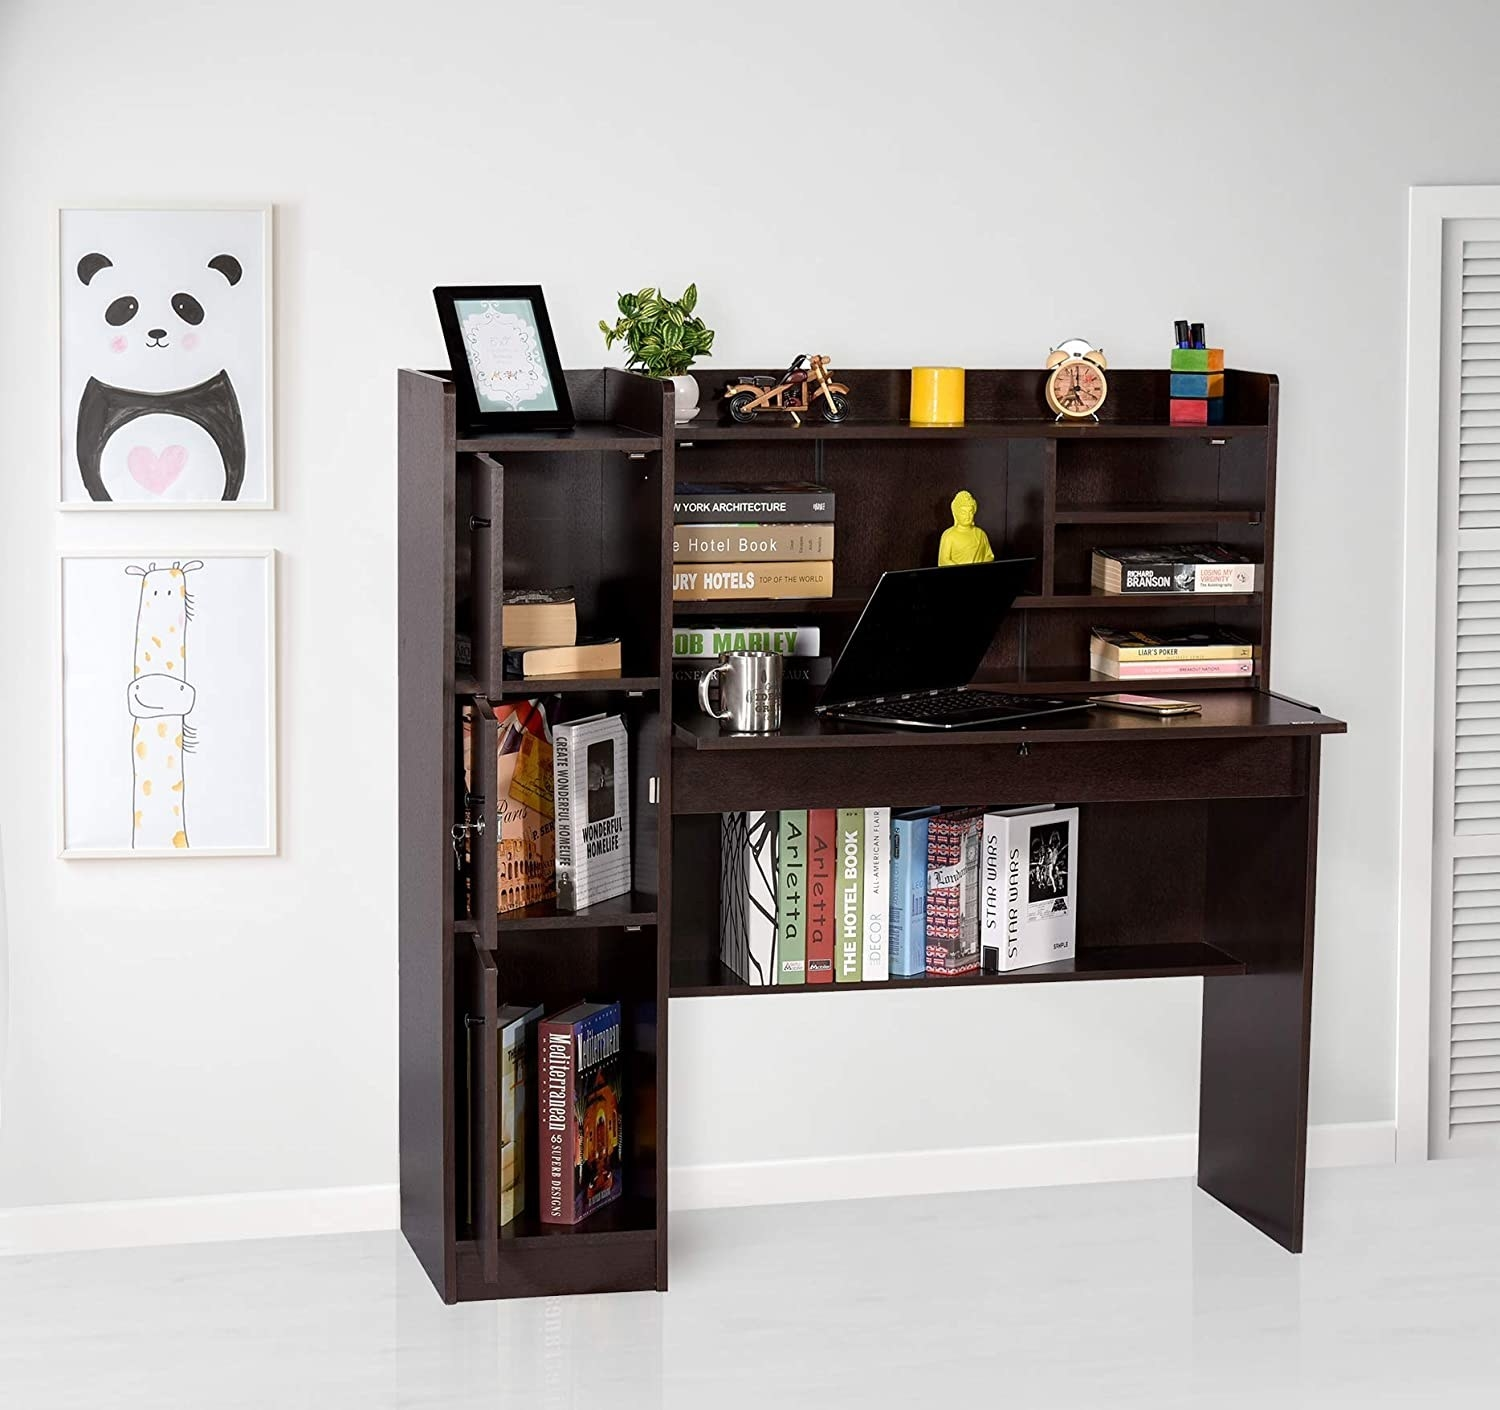 A room with a wooden desk that has multiple storage compartments filled with books and stationery